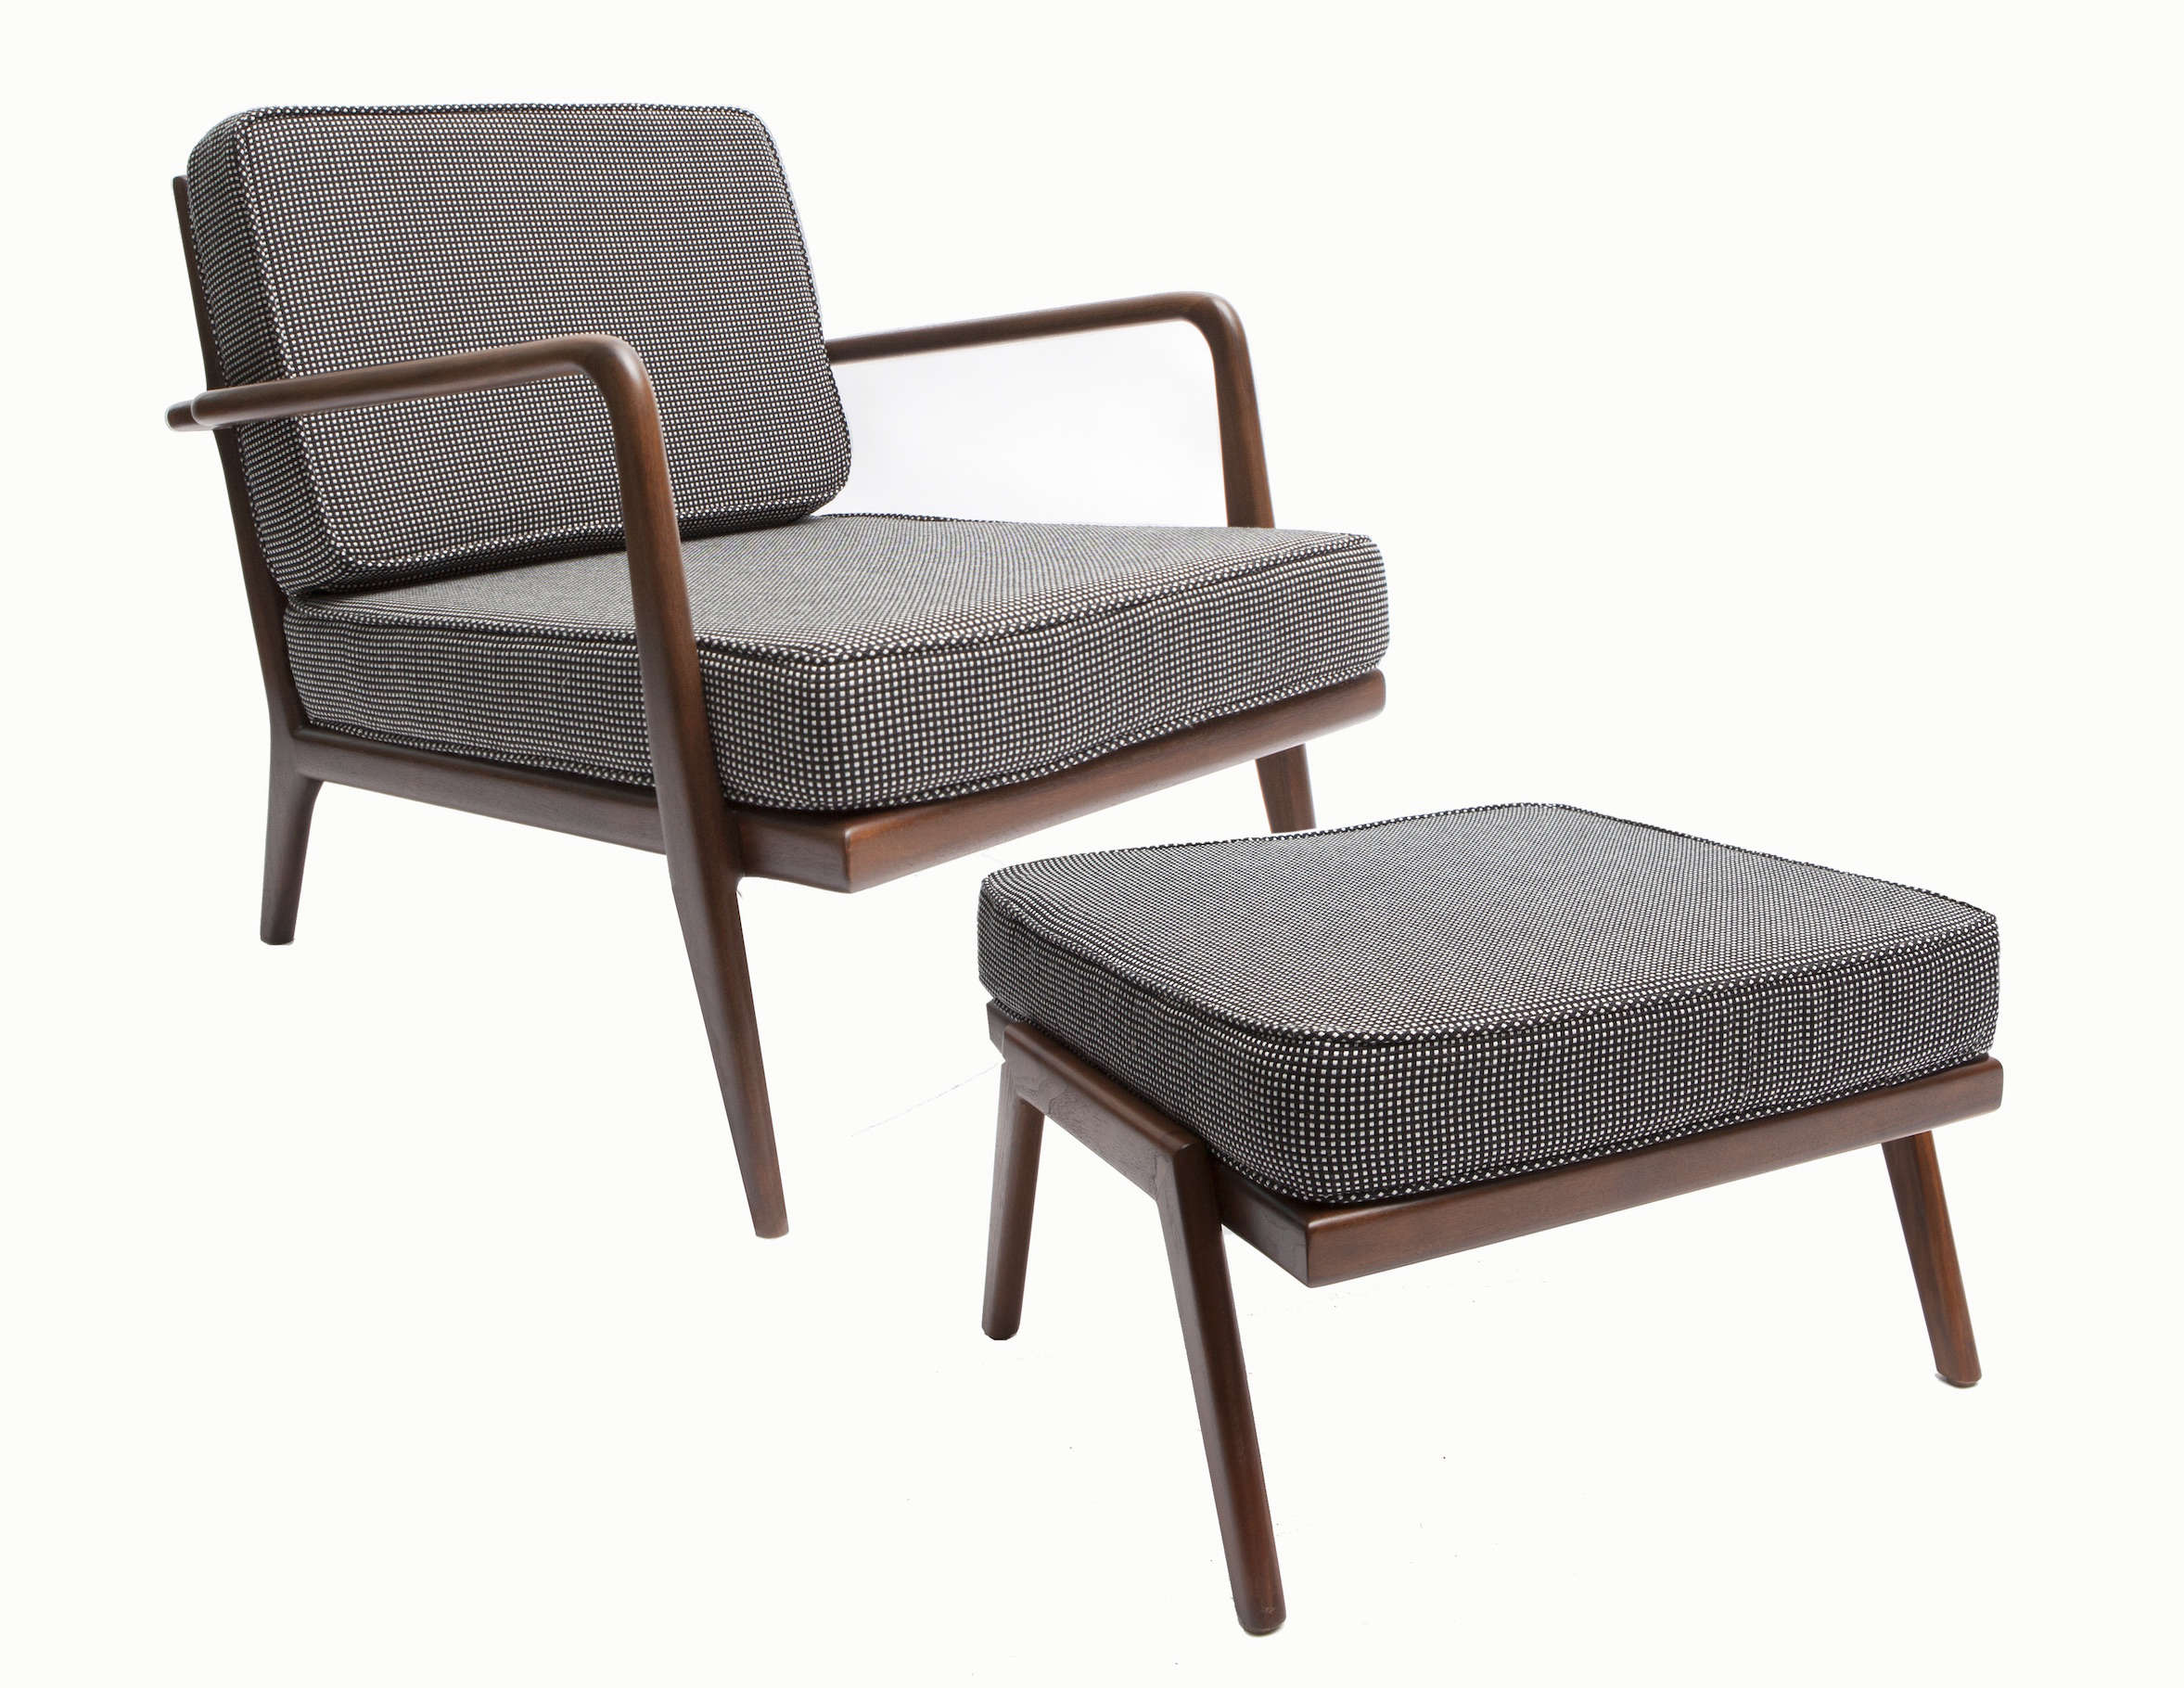 Second Coming 5 FamilyOwned Midcentury Design Companies Revived Smilow Furniture armchair and ottoman, a revived midcentury design | Remodelista